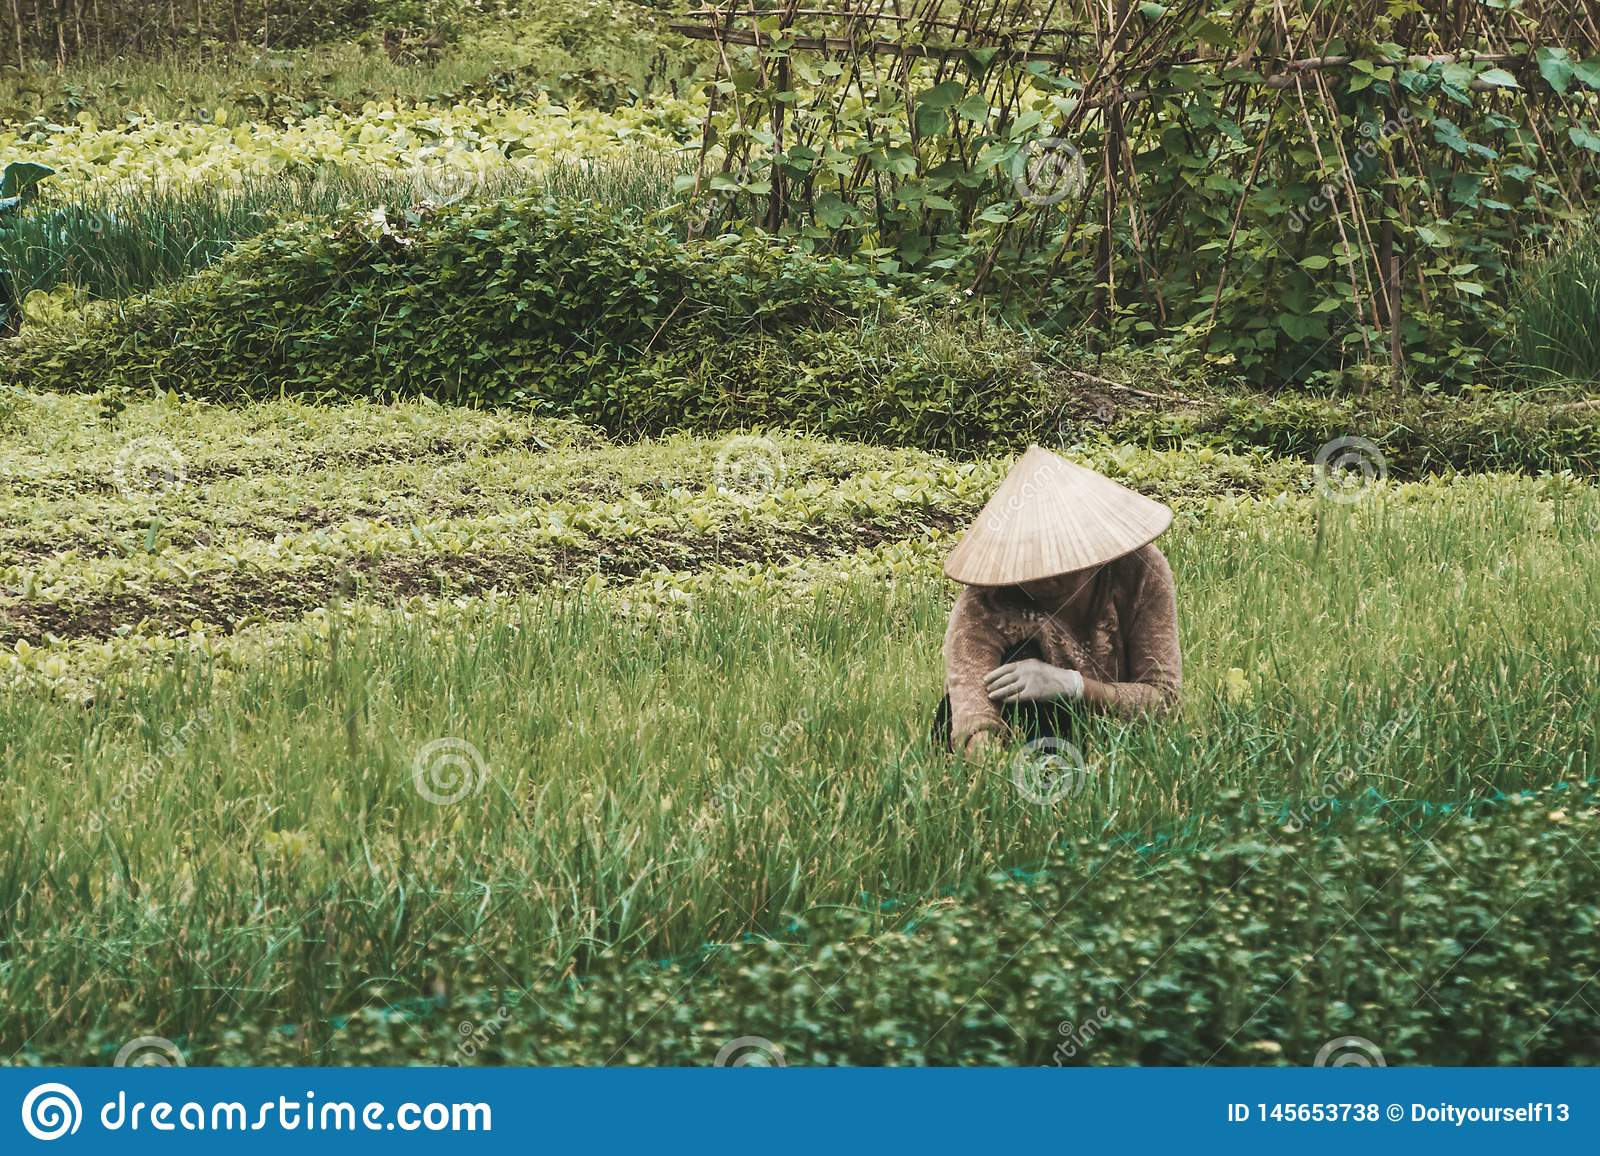 Farmer wearing traditional Vietnamese hat on field in Vietnam. Worker doing agriculture work in plant. Life of a man or woman on